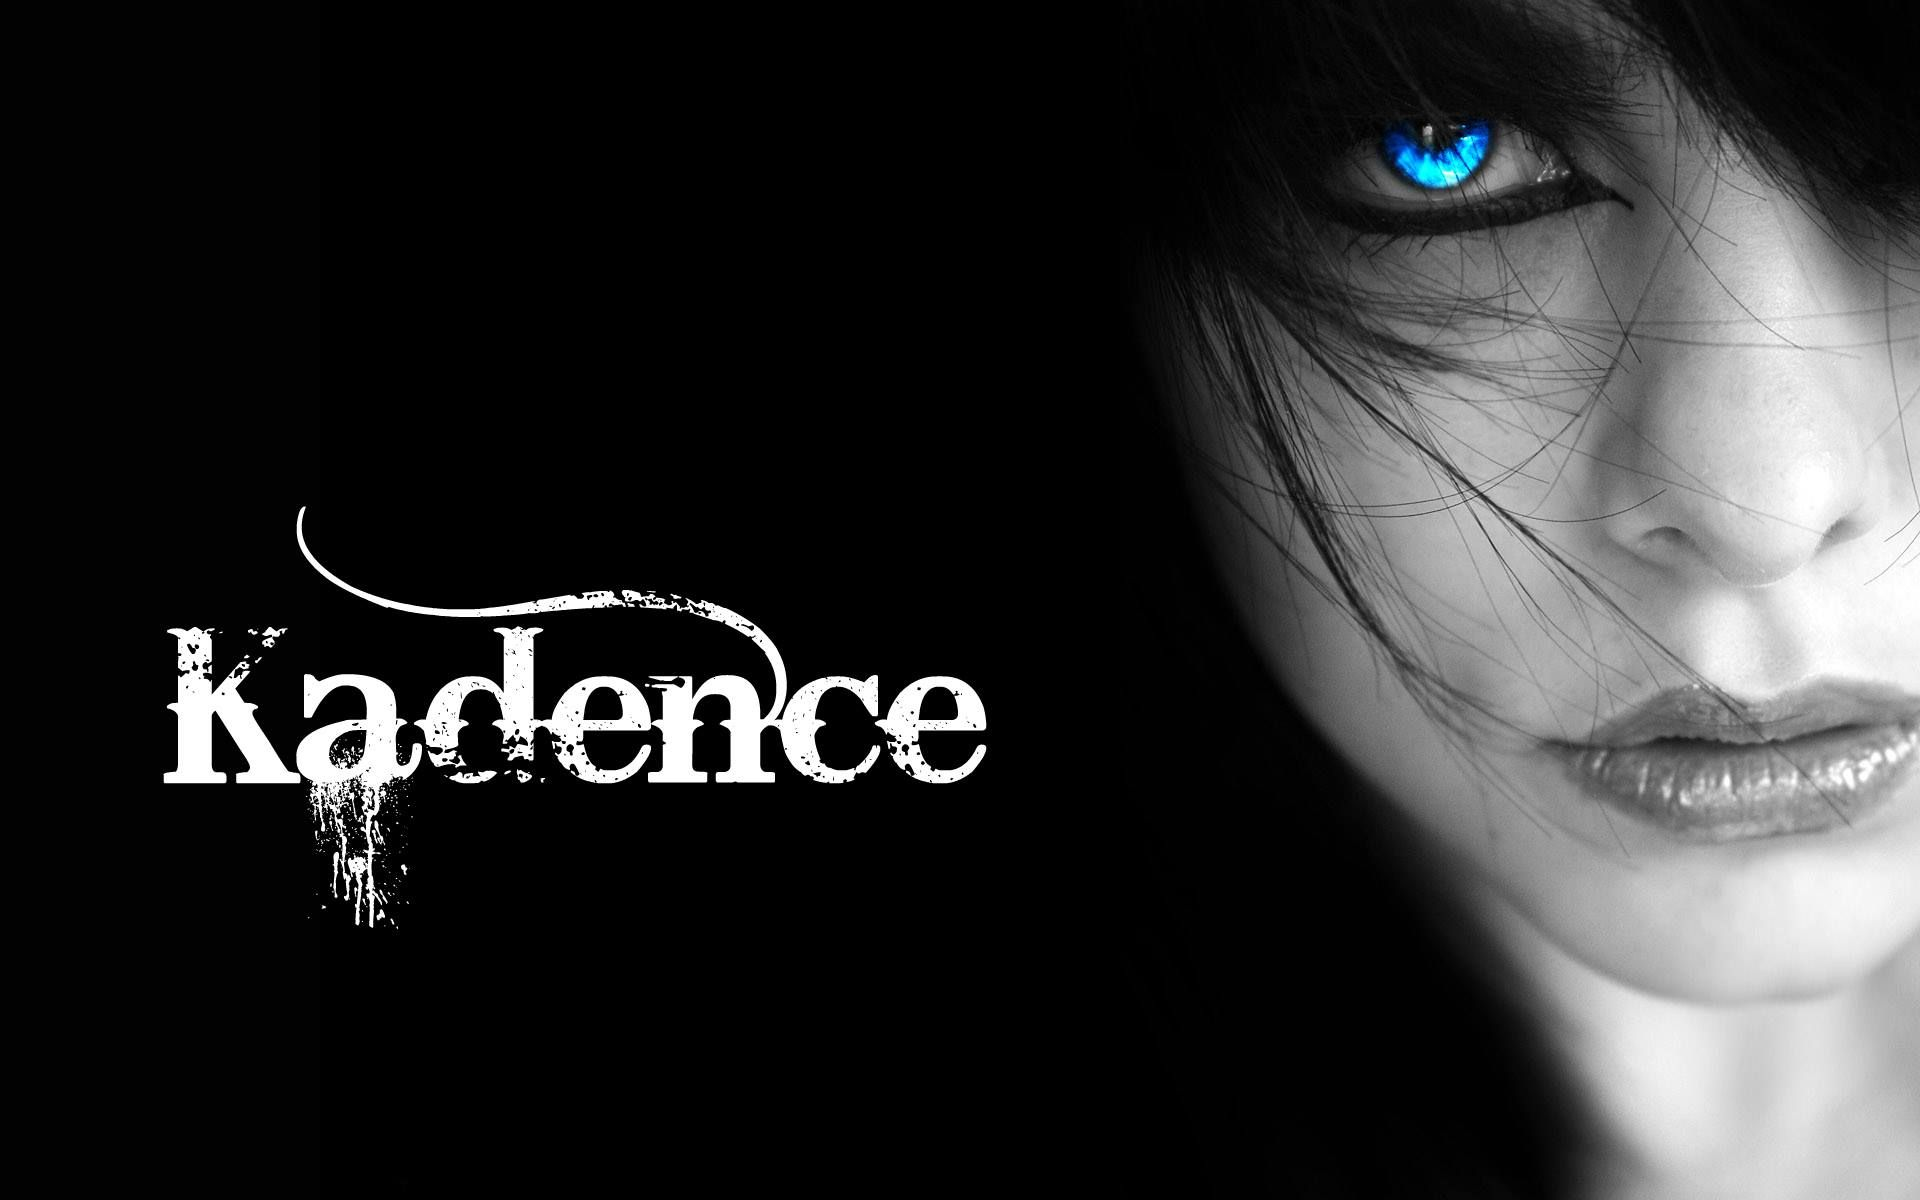 Kadence will open the main stage at 10am. Come along to get a glimpse of the local folk pop band.